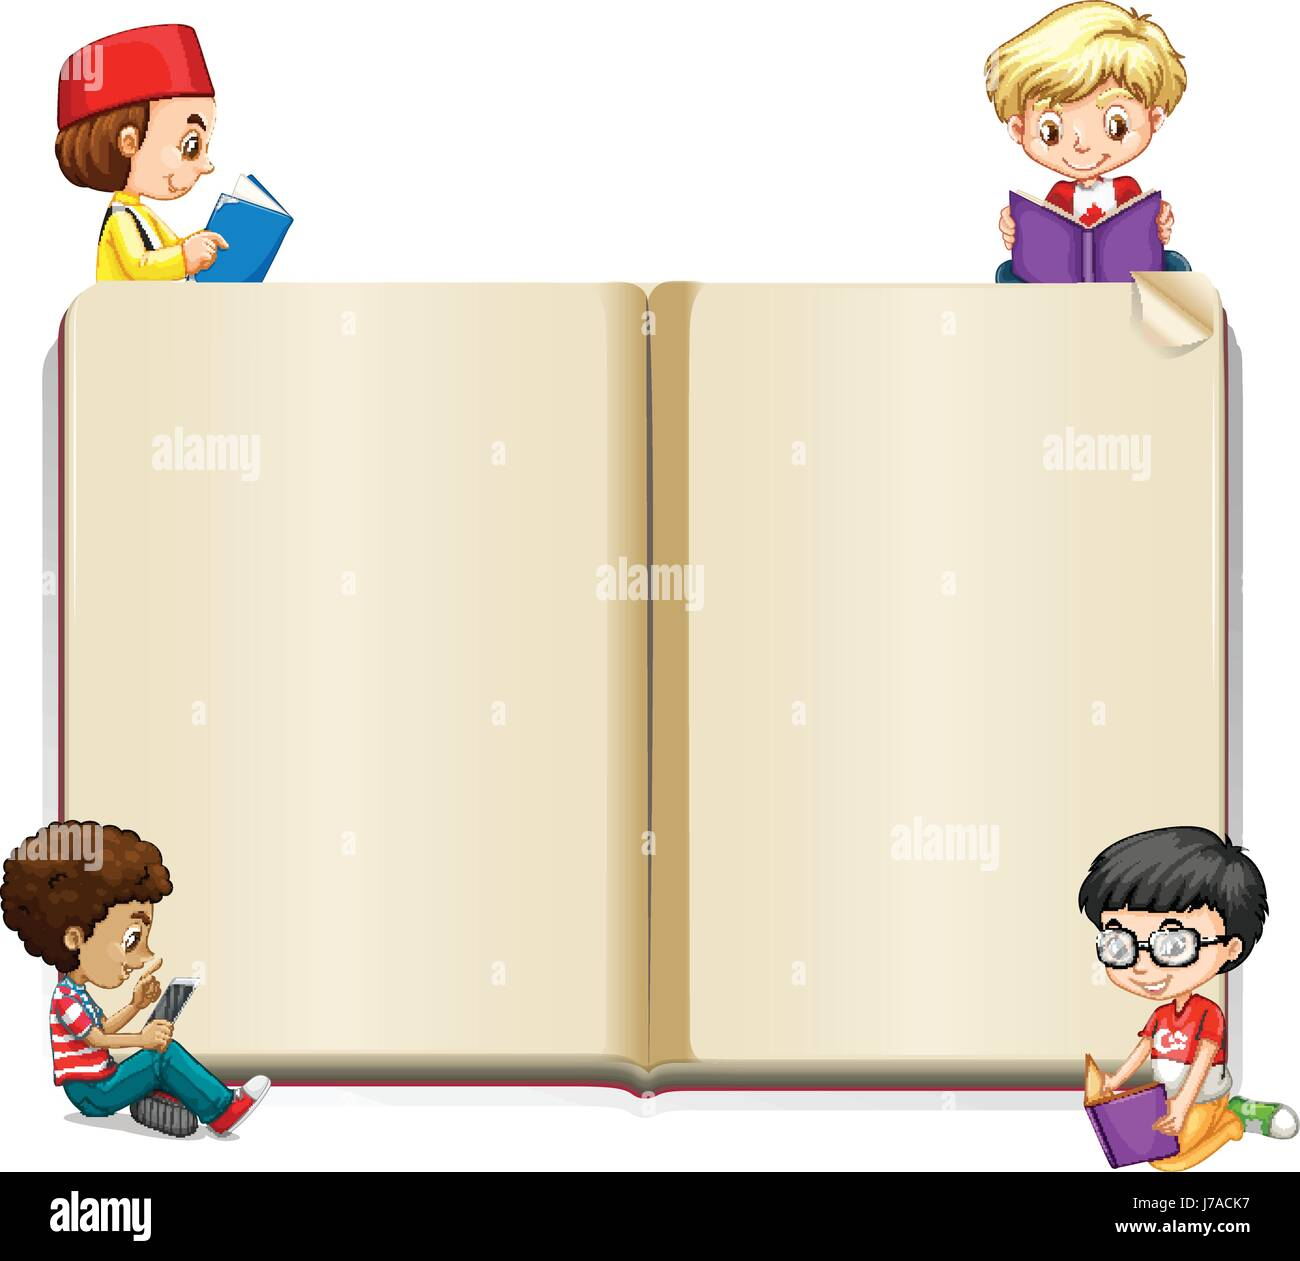 book template with kids reading illustration stock vector art